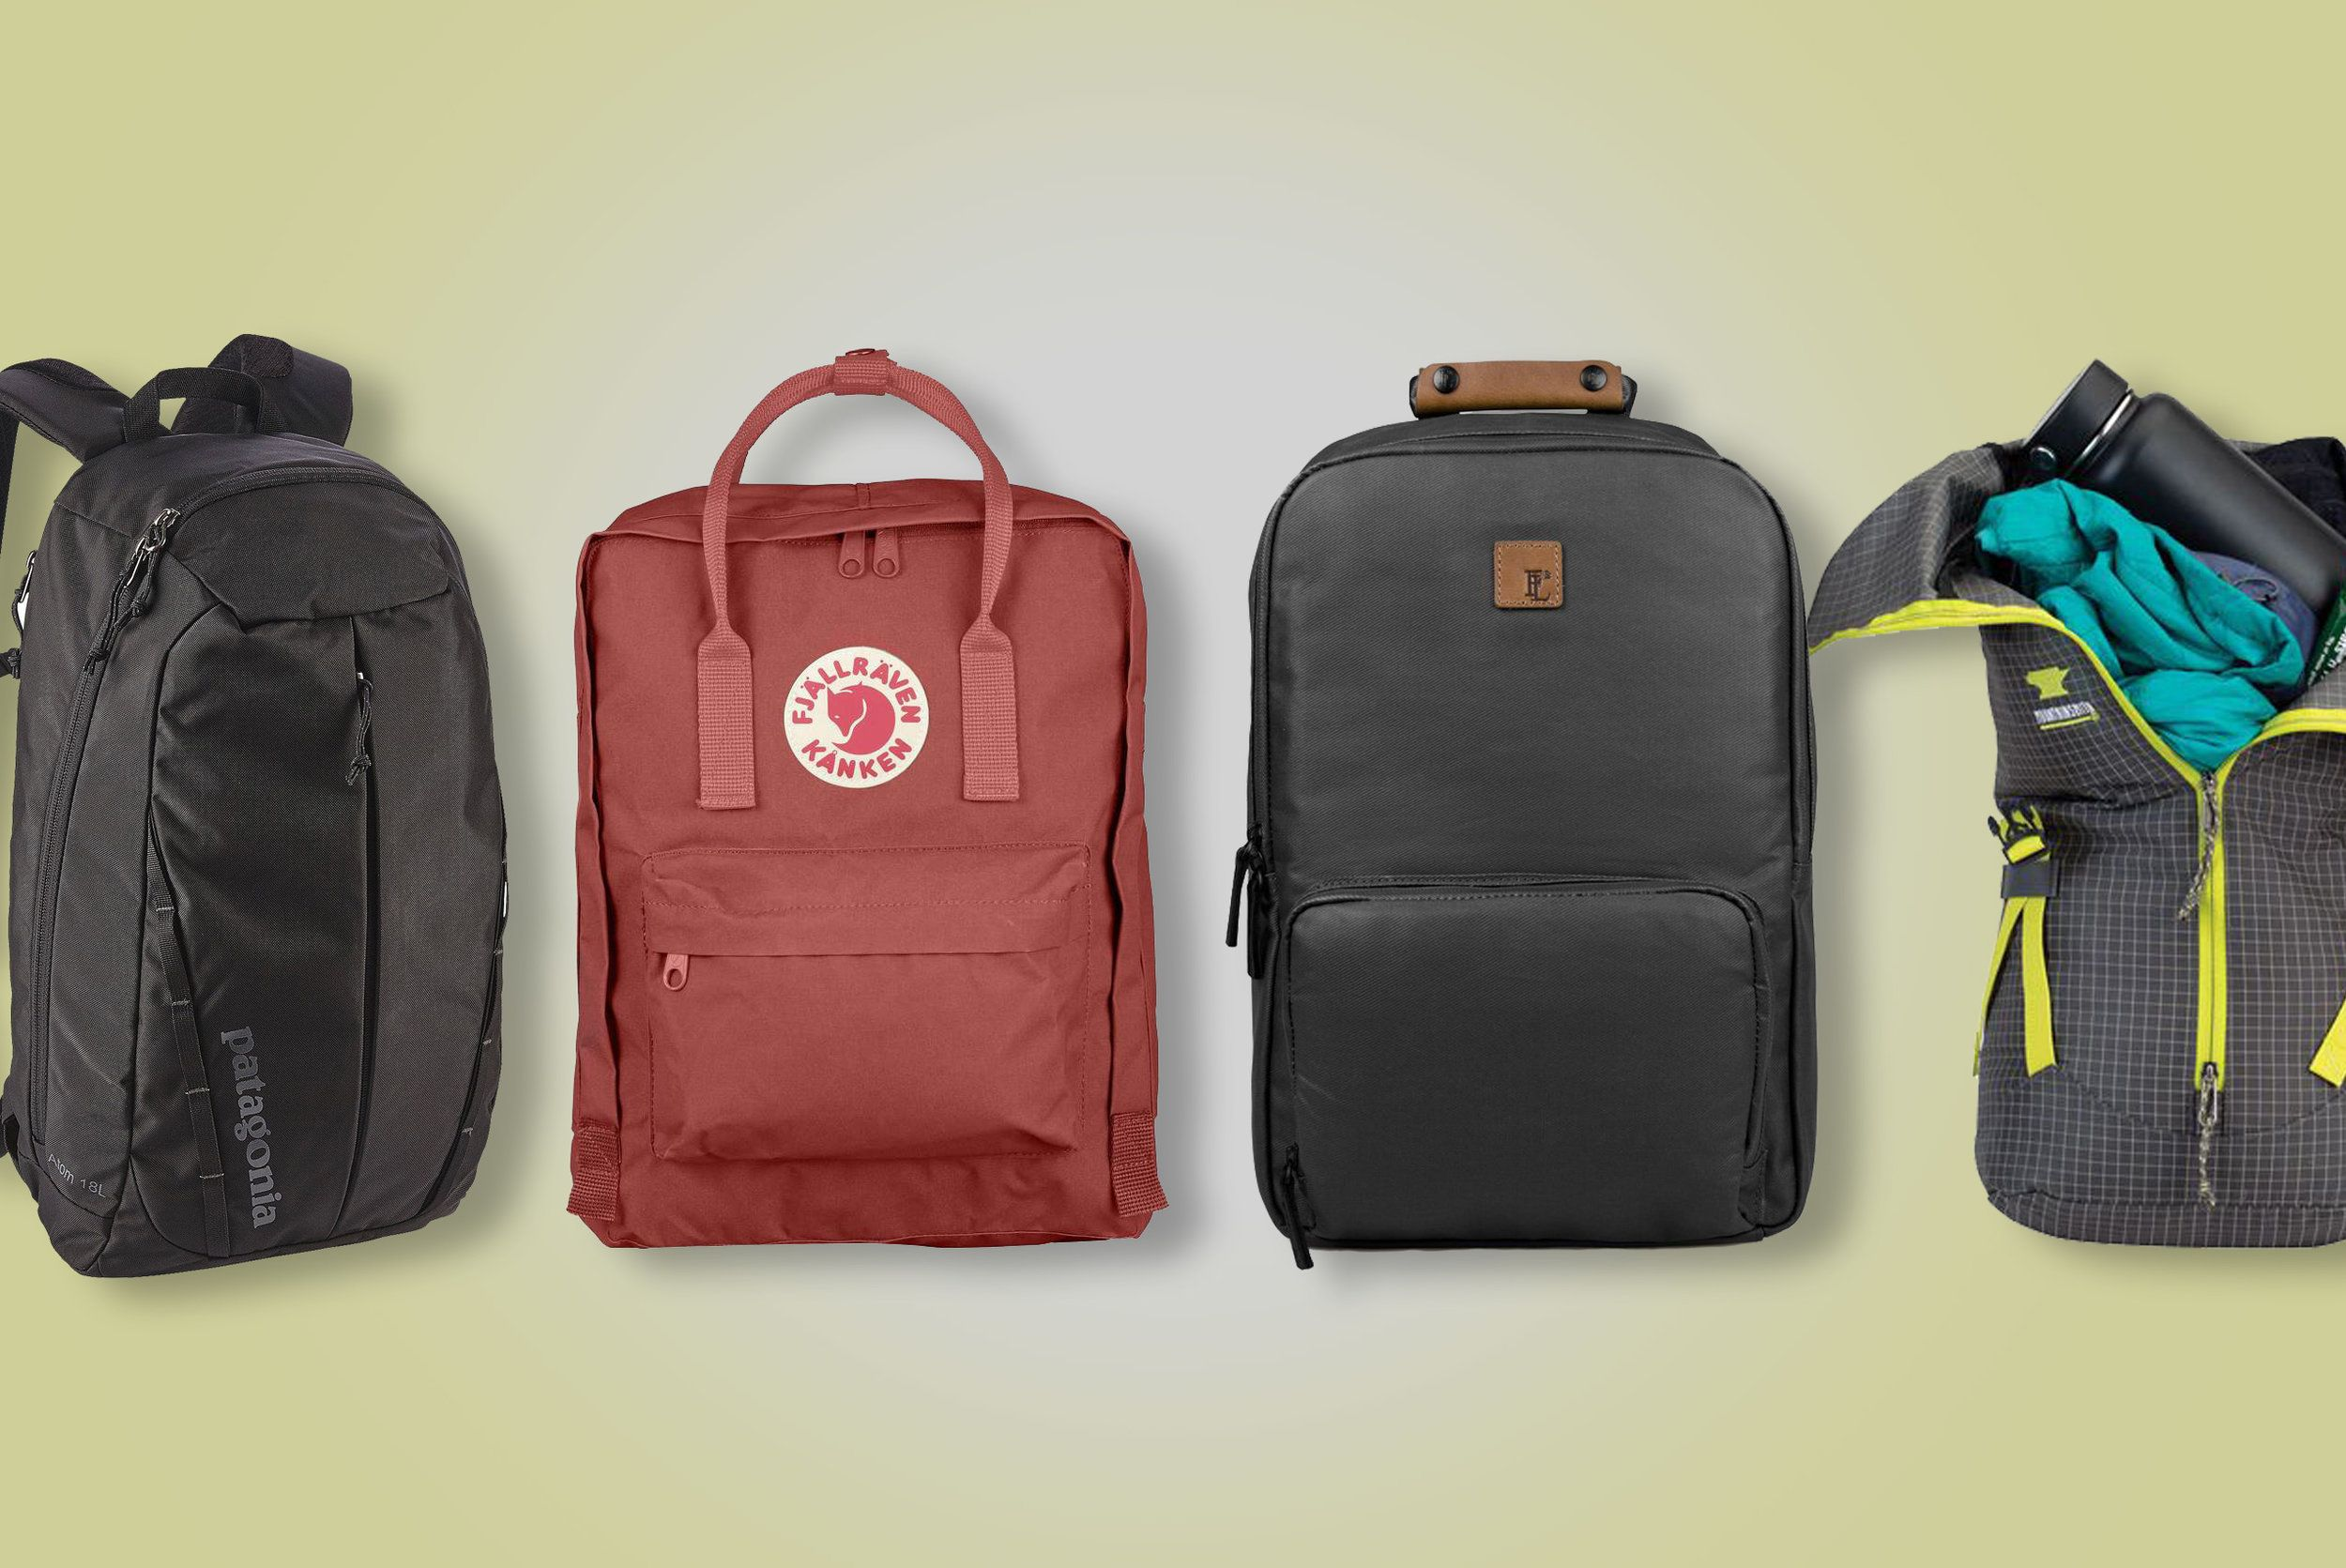 10 Best Women's Backpacks for Work that are Sophisticated